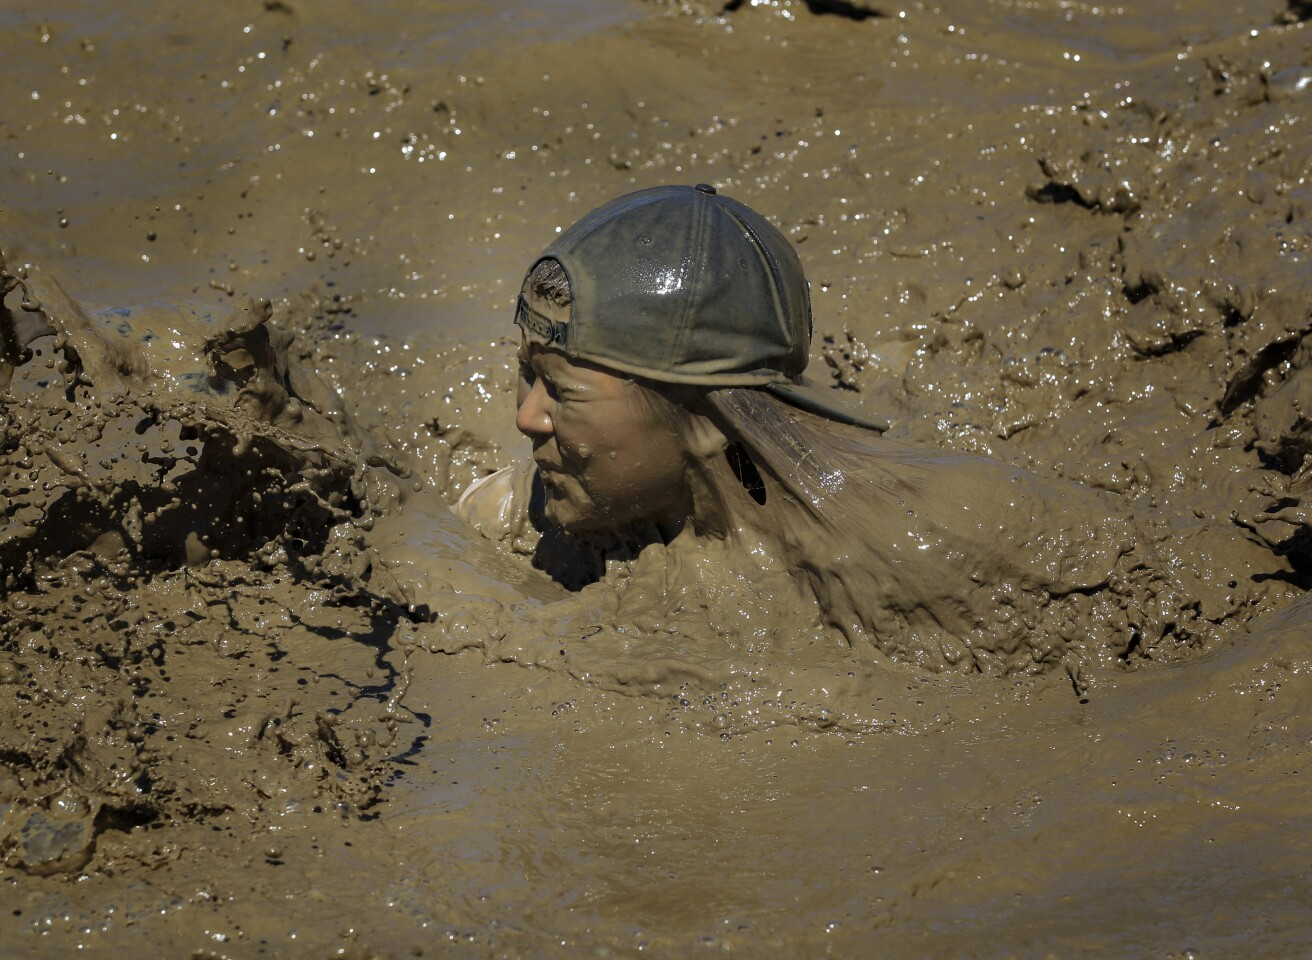 One runner makes her way through the final obstacle the Mud Pit before crossing the finish line at the annual 10K Camp Pendleton Mud Run on Sunday.